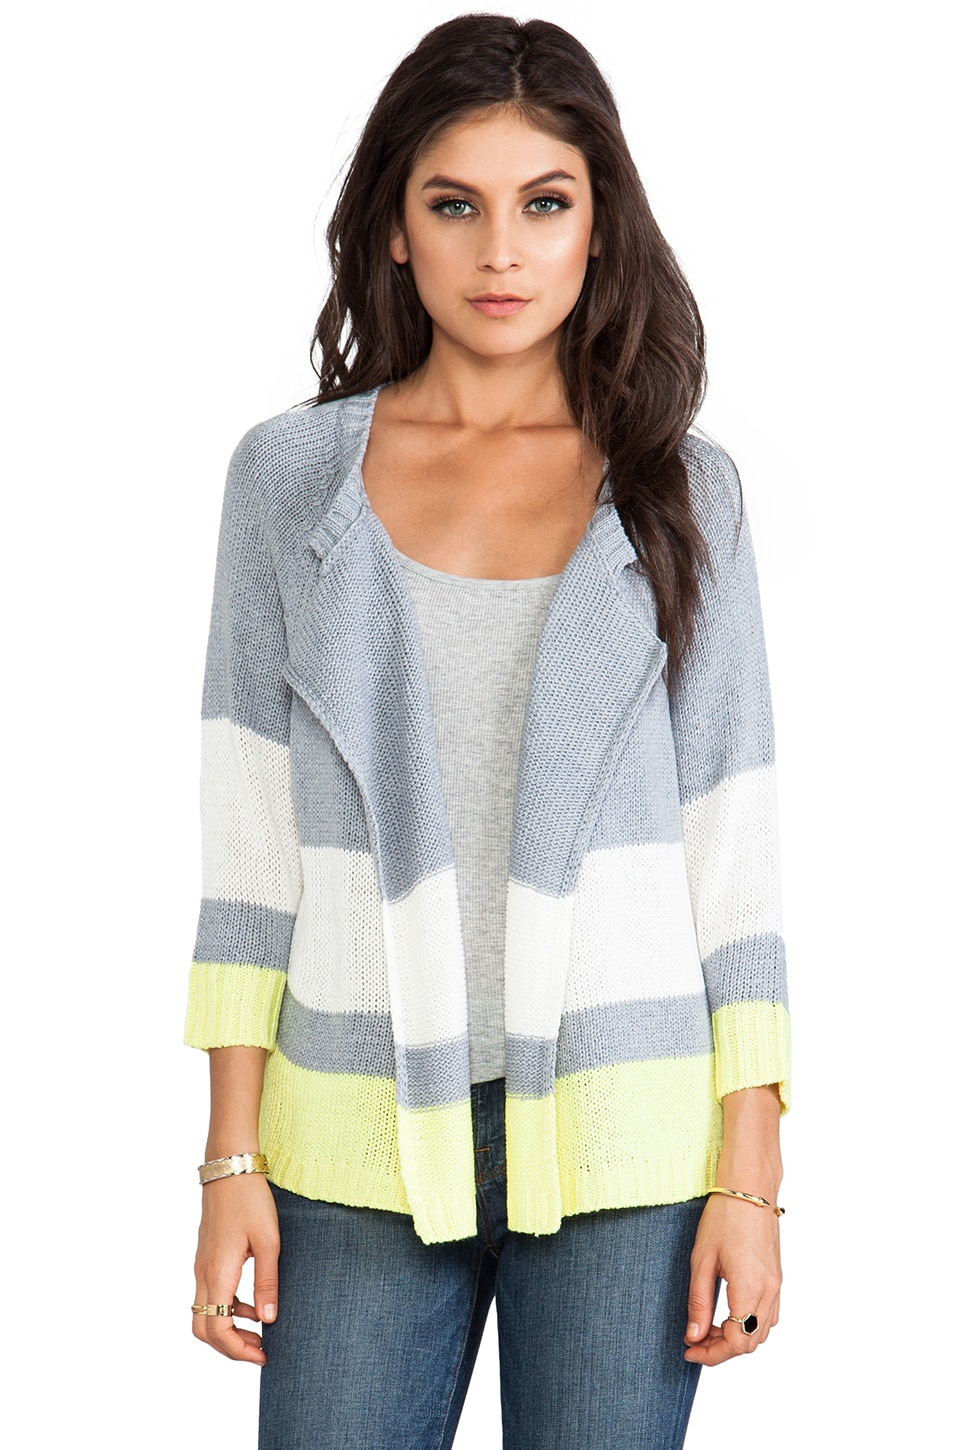 BB Dakota Idra Striped Cardigan in Heather Grey